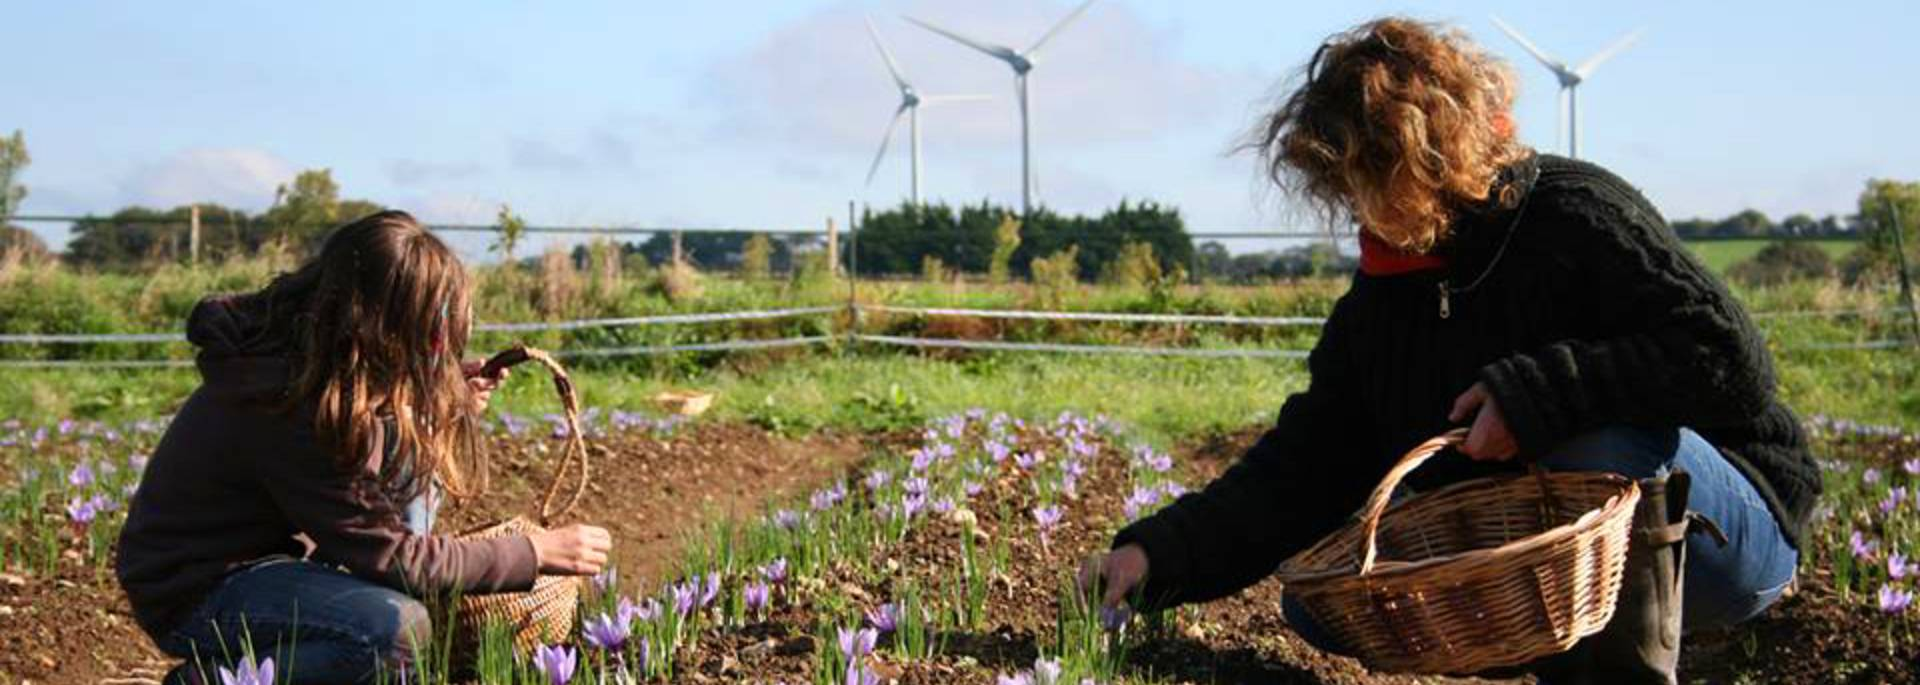 Anne Roche and her daughter harvesting saffron crocuses - Pays Bigouden © A Roche